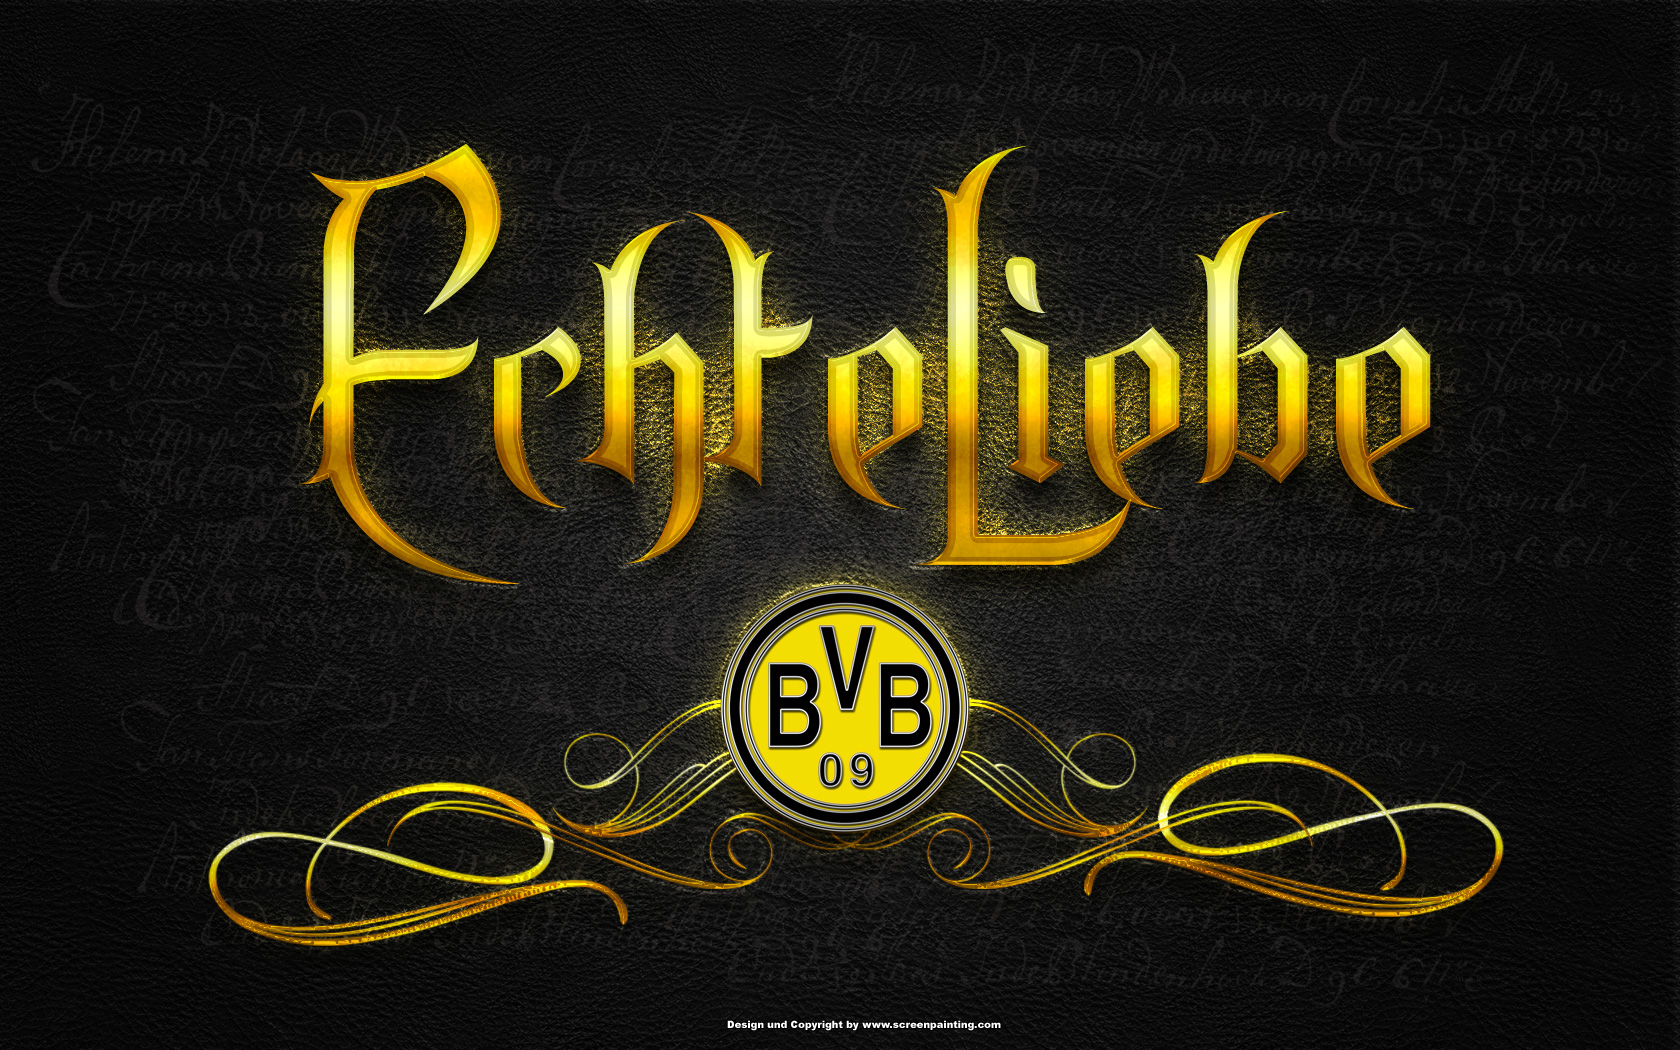 Borussia Dortmund Football Wallpaper